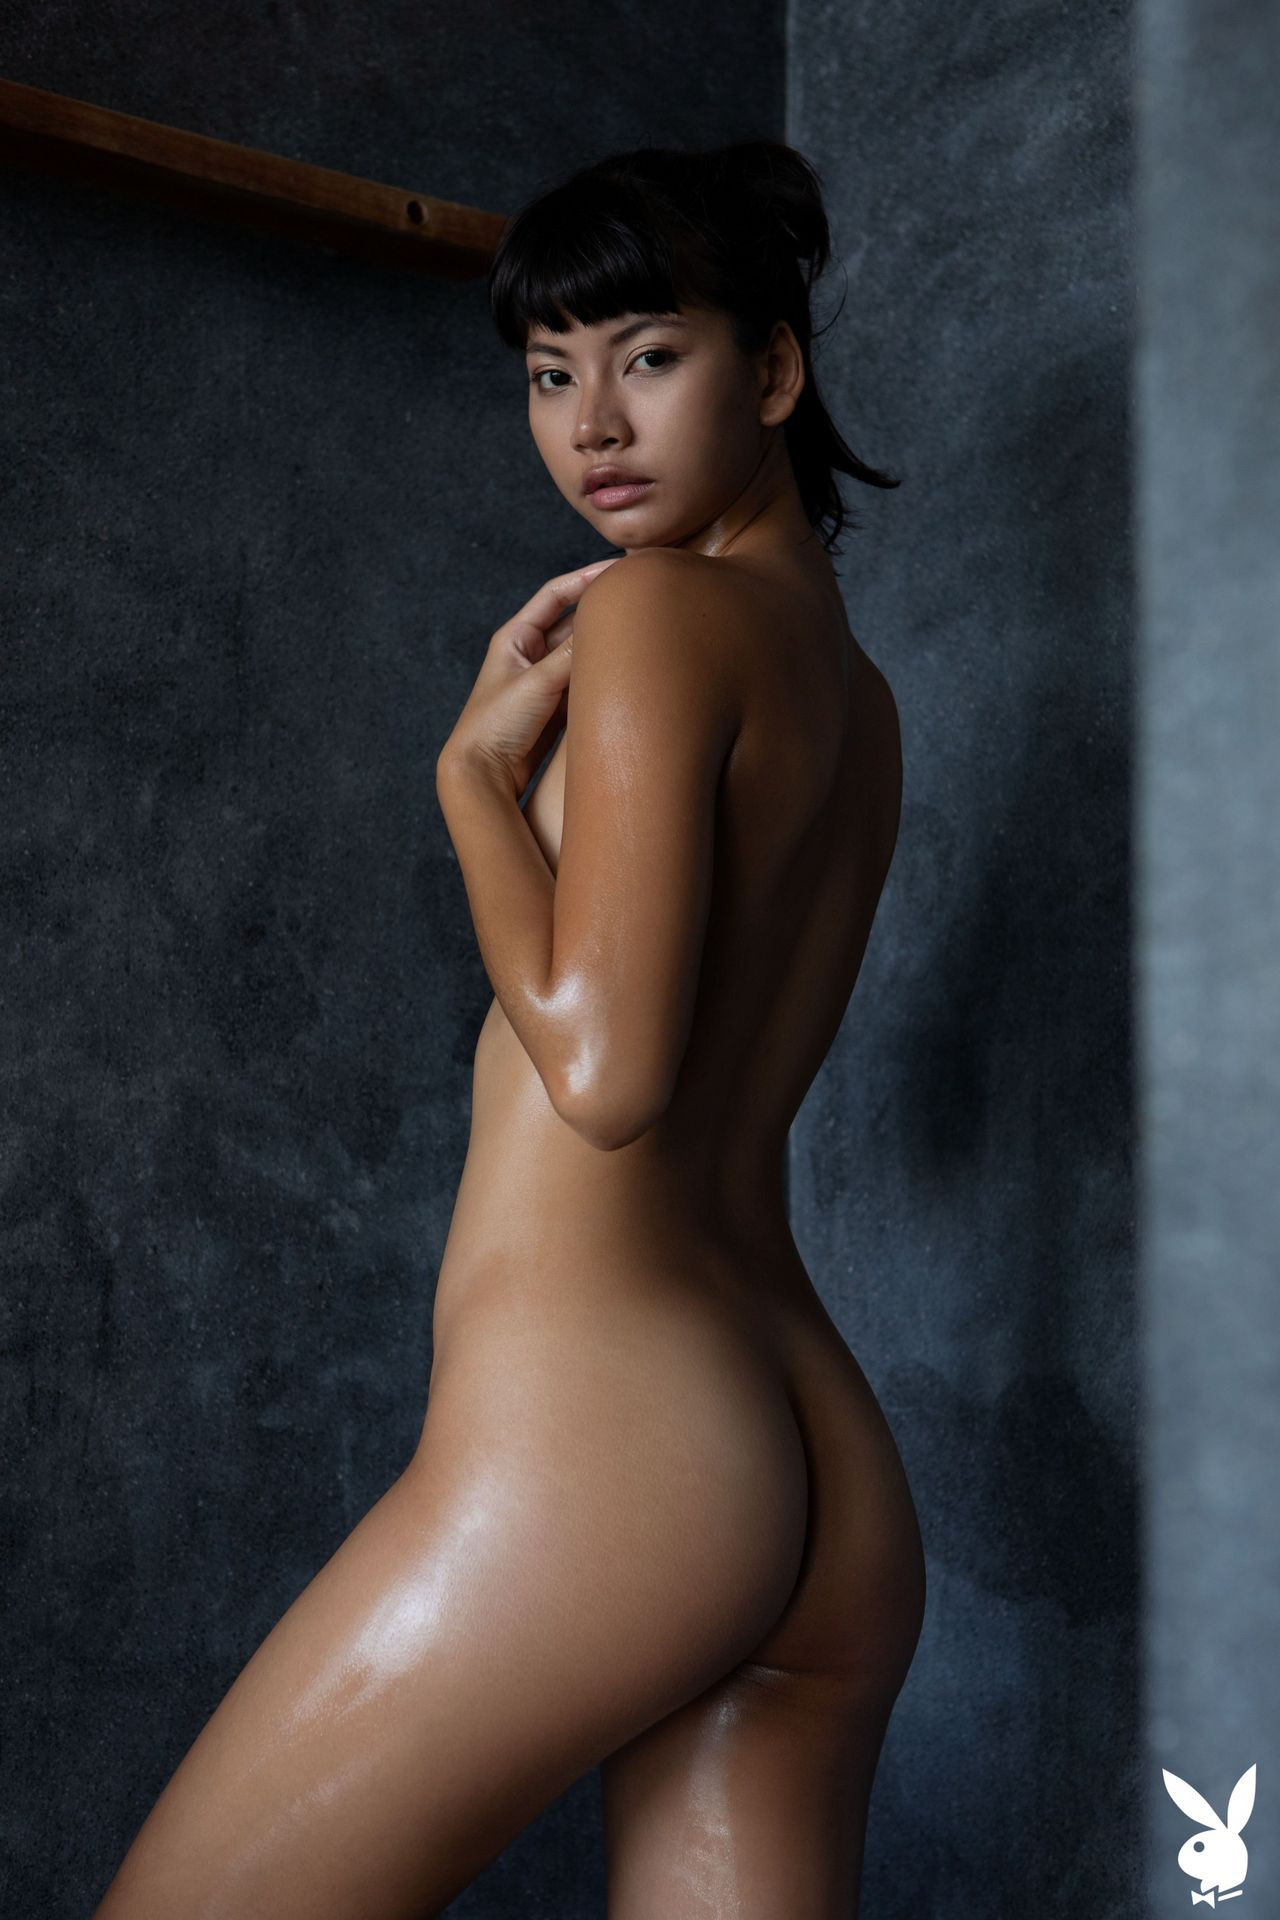 Cara Pin Nude Soft Shower thefappening.nu 4